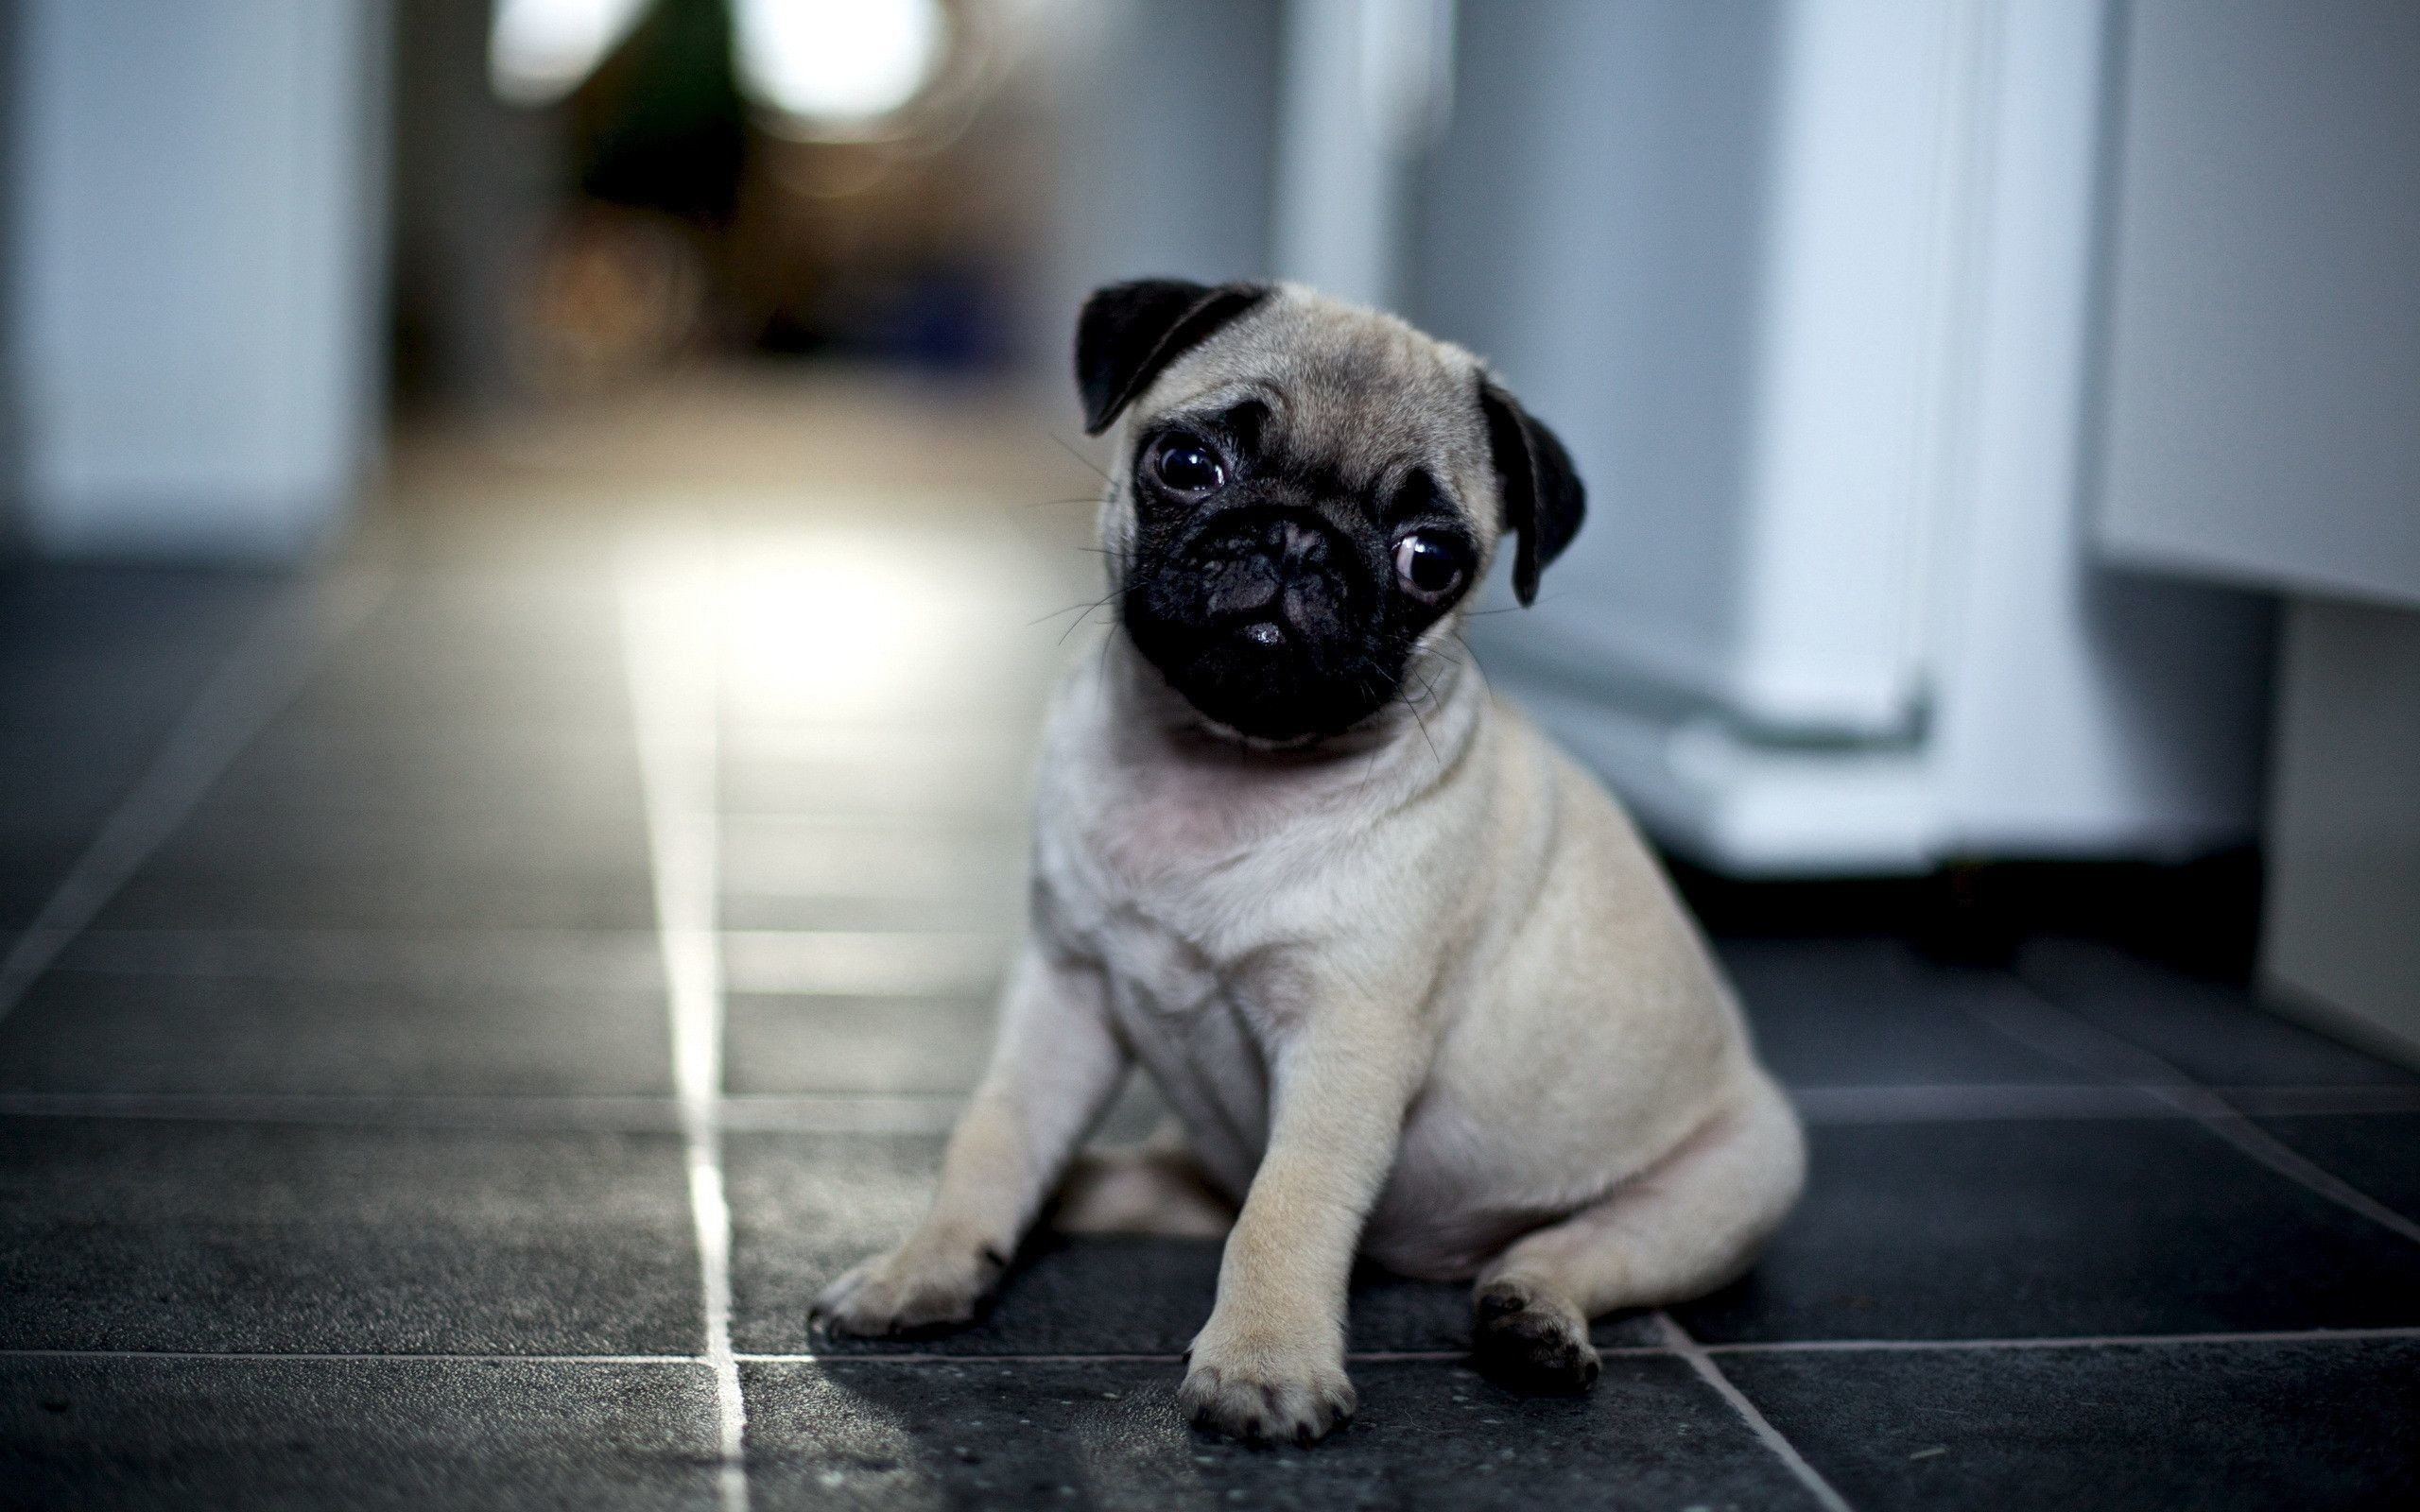 2560x1600 hd pug wallpapers hd wallpapers background photos mac wallpapers artworks  high definition wallpaper for iphone free download 2560×1600 Wallpaper HD